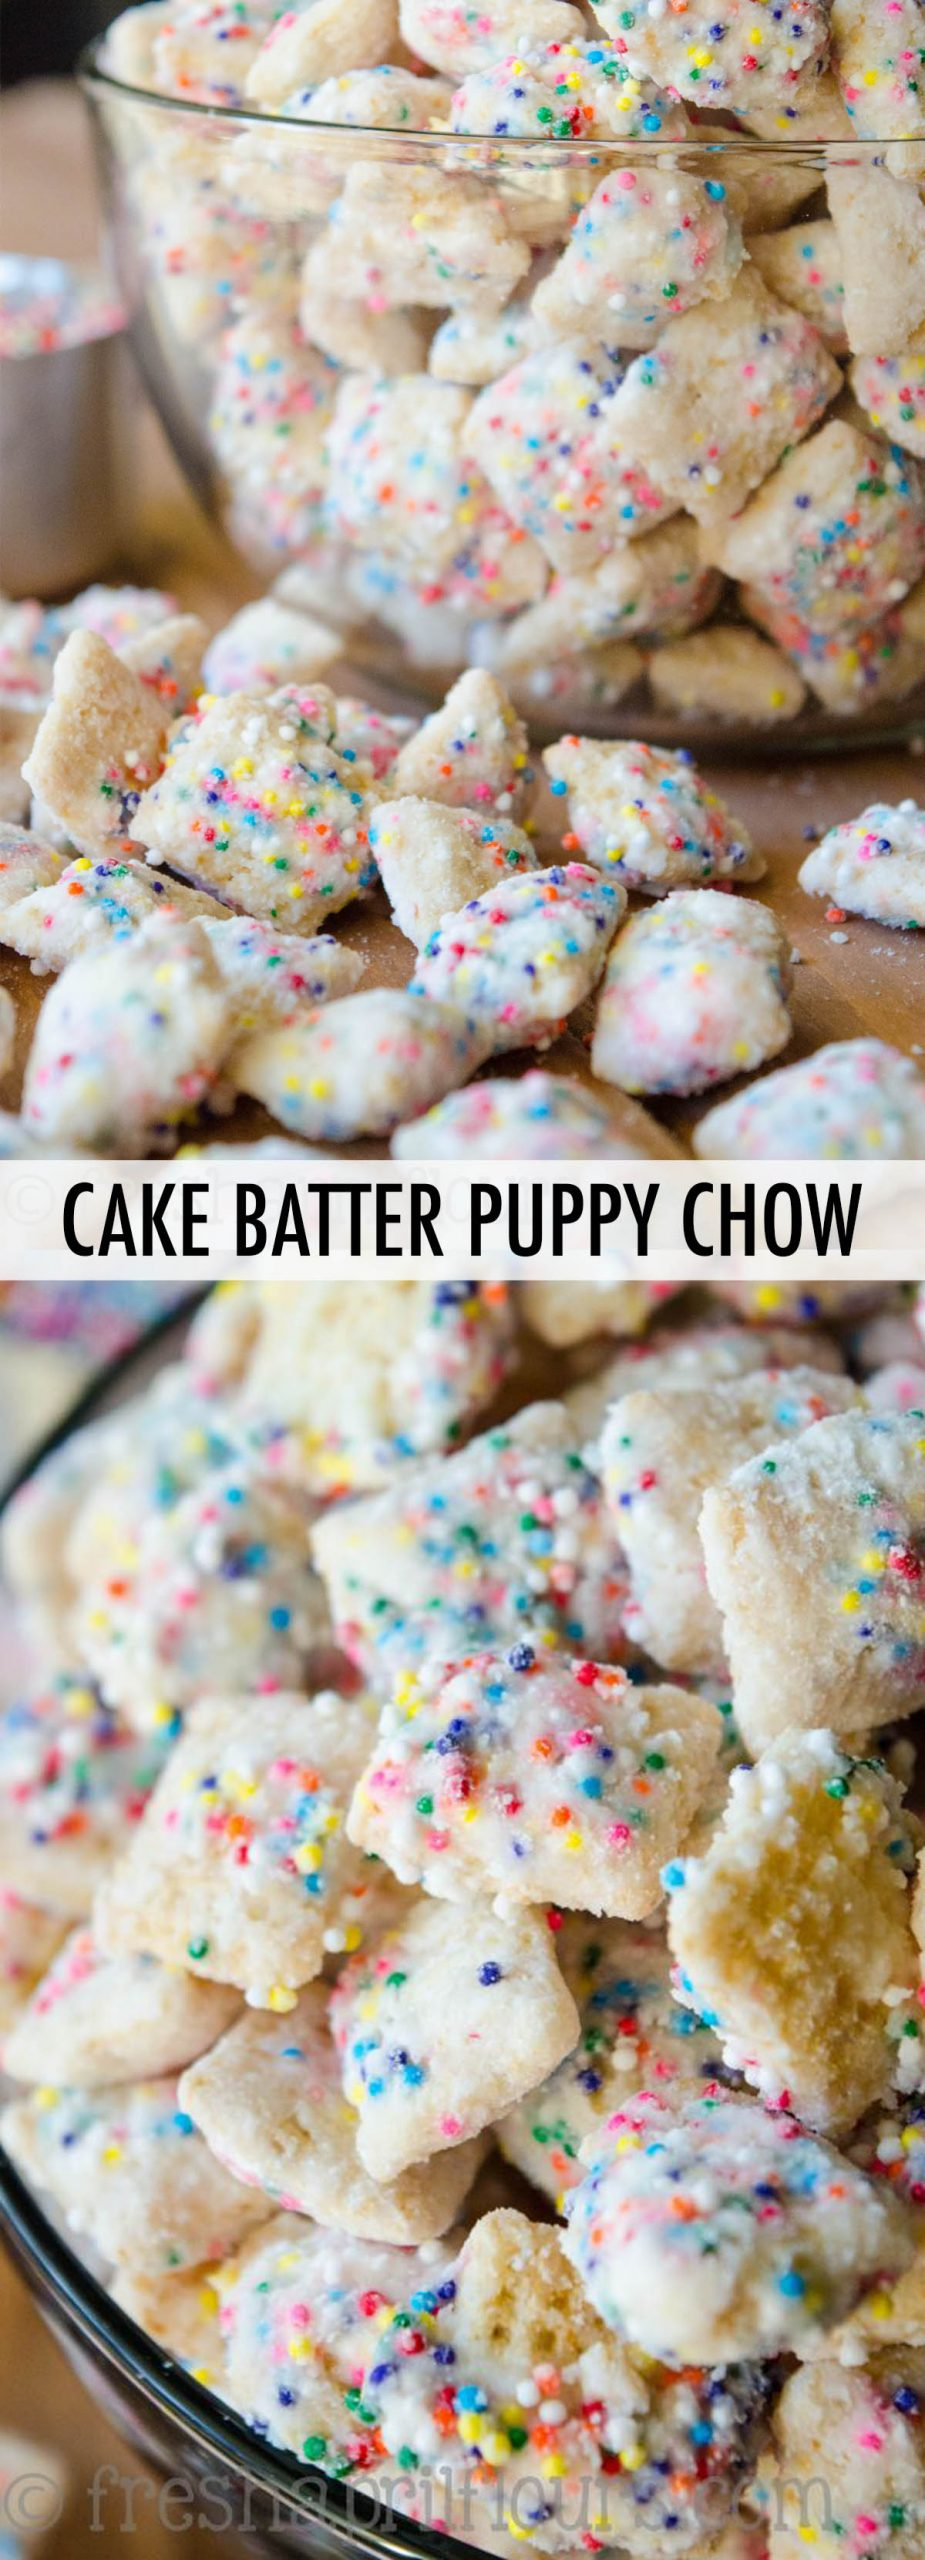 Outstanding Cake Batter Puppy Chow Funny Birthday Cards Online Alyptdamsfinfo